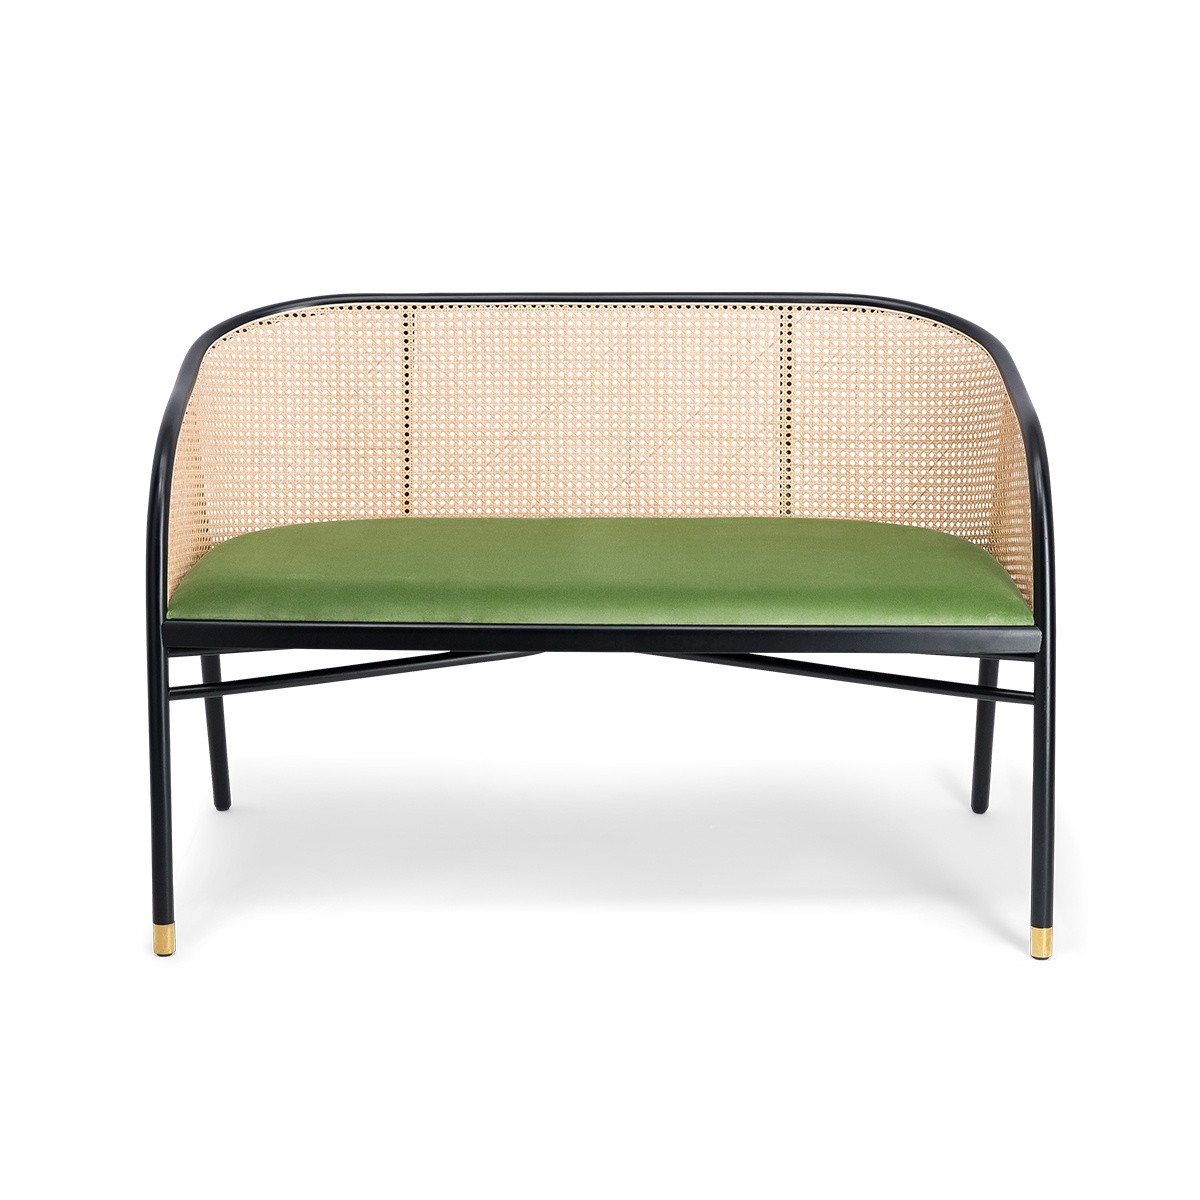 Cavallo Sofa, Almond Green Velvet with Black Lacquered Frame